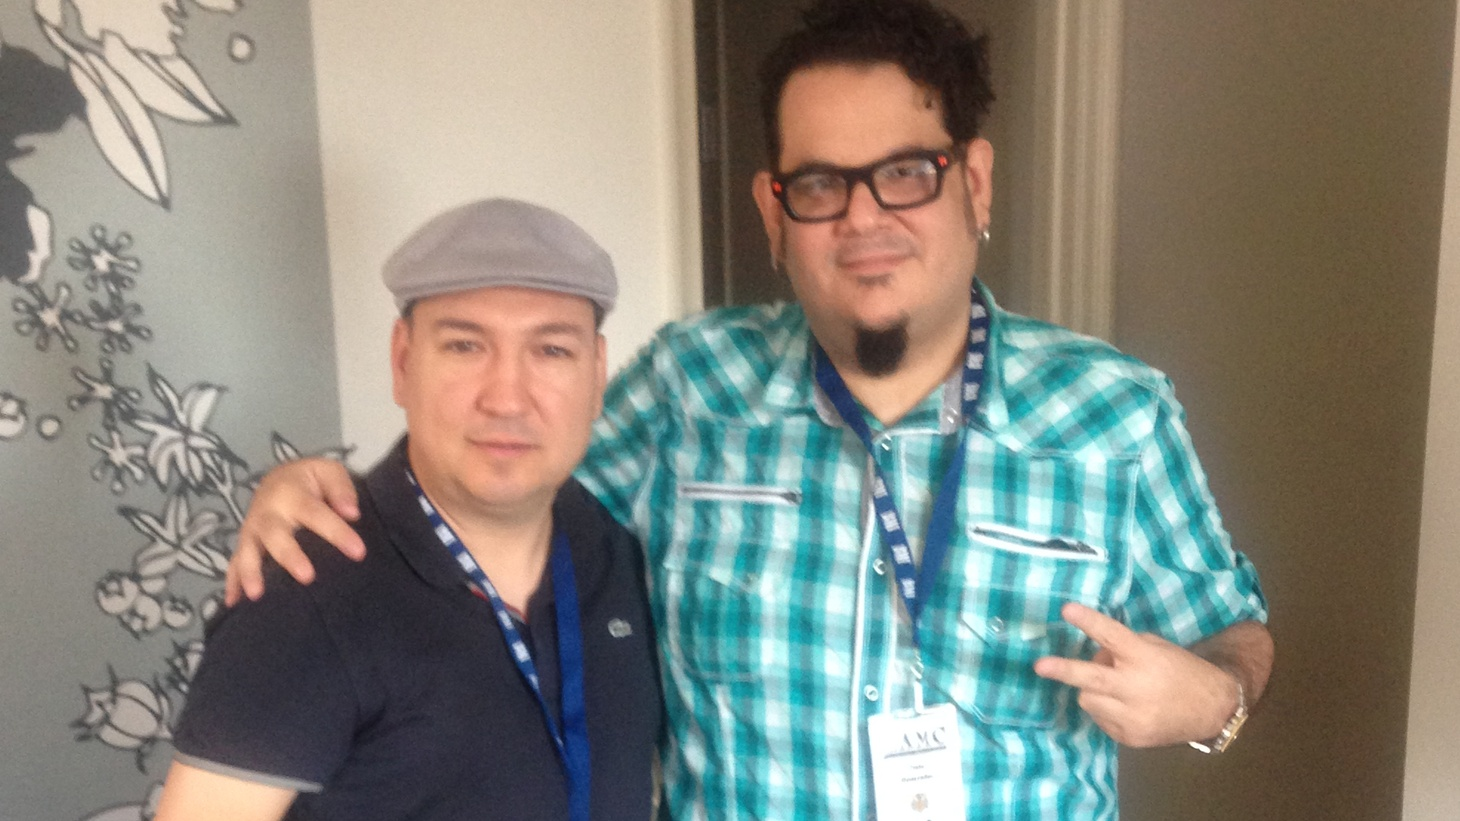 Broadcasting live from the Latin Alternative Music Conference, Raul Campos hosts an interview and DJ Set with Venezuelan-born, Miami-based Grammy-winning Producer and re-mixer, Mr. Pauer.